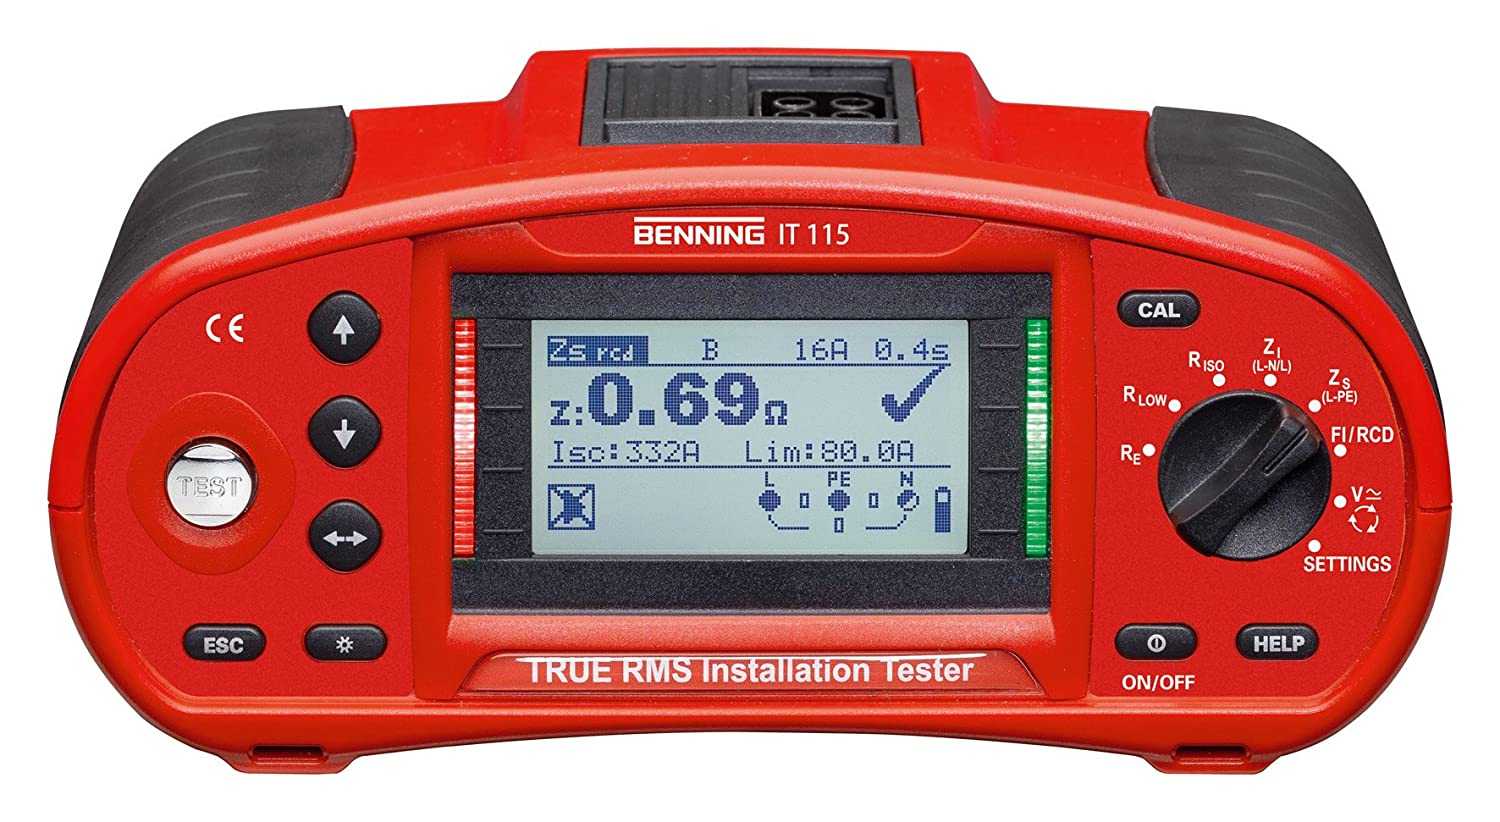 Benning It 115 True Rms Installation Tester 044104 Business Industry Science